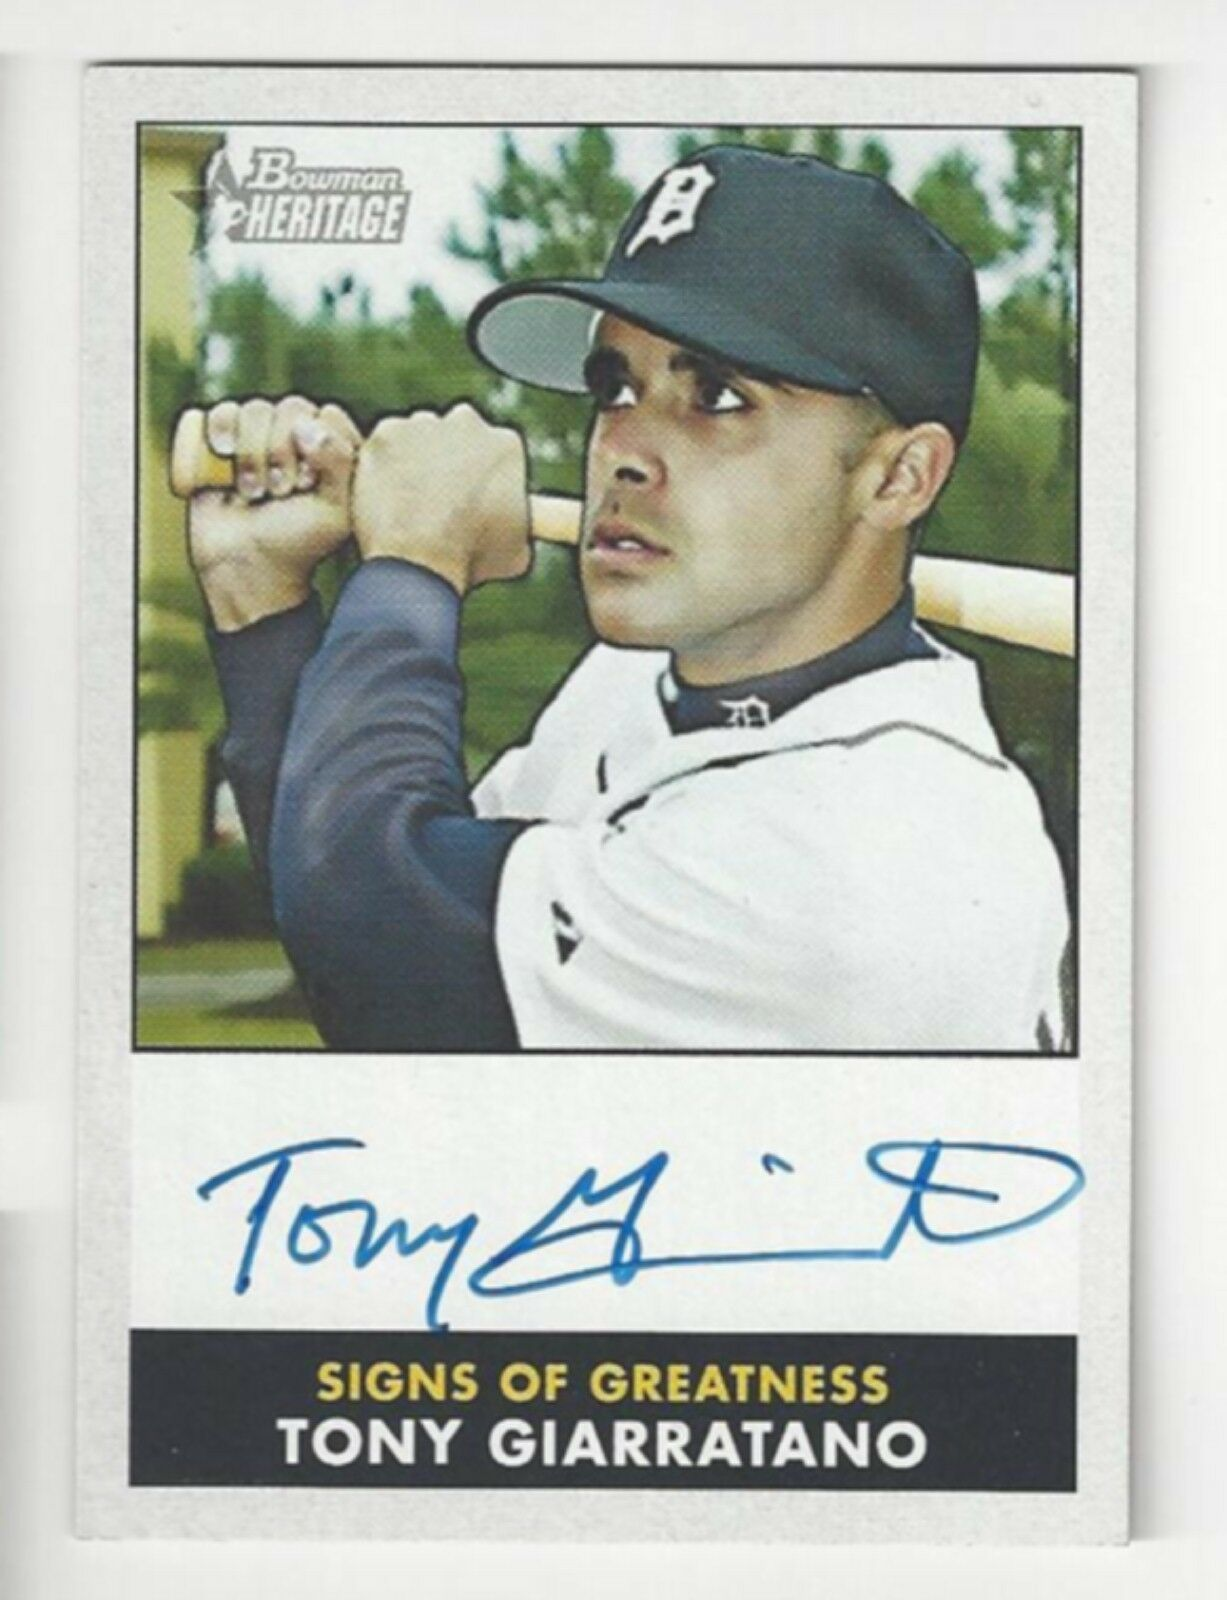 Primary image for 2007 Bowman Heritage Signs of Greatness - Tony Giarratano - #SG-TG - Autograph